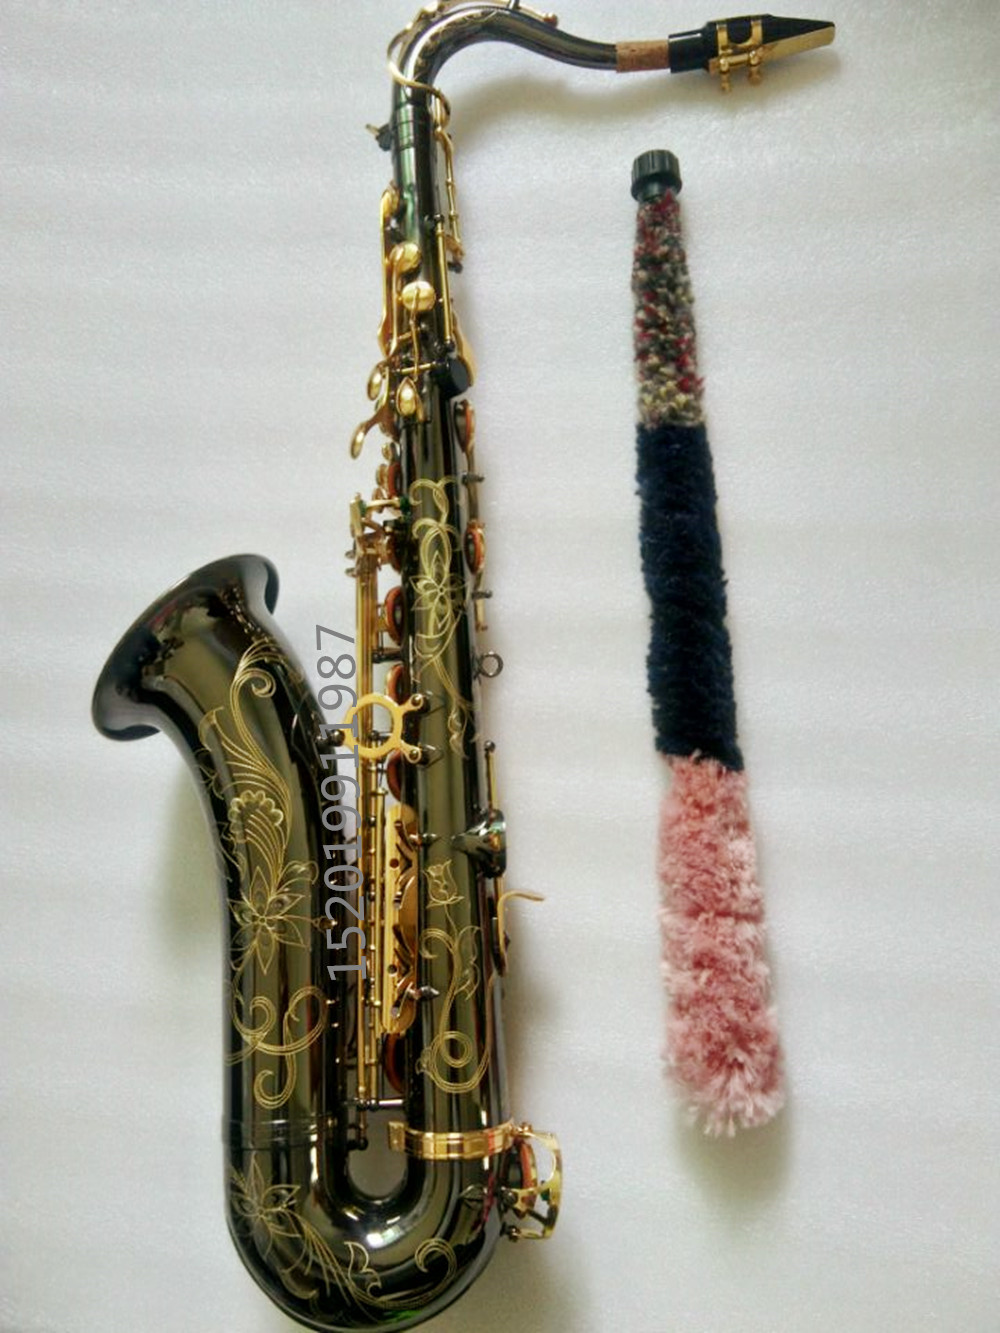 free Black nickel Gold French model Tenor Saxophone 802 sax B Flat Case Sax Professional Mouthpiece and Instruments Accesorios high grade tenor saxophone instrumentnew 802 model b tenor sax instruments wind tube black nickel gold key saxophone